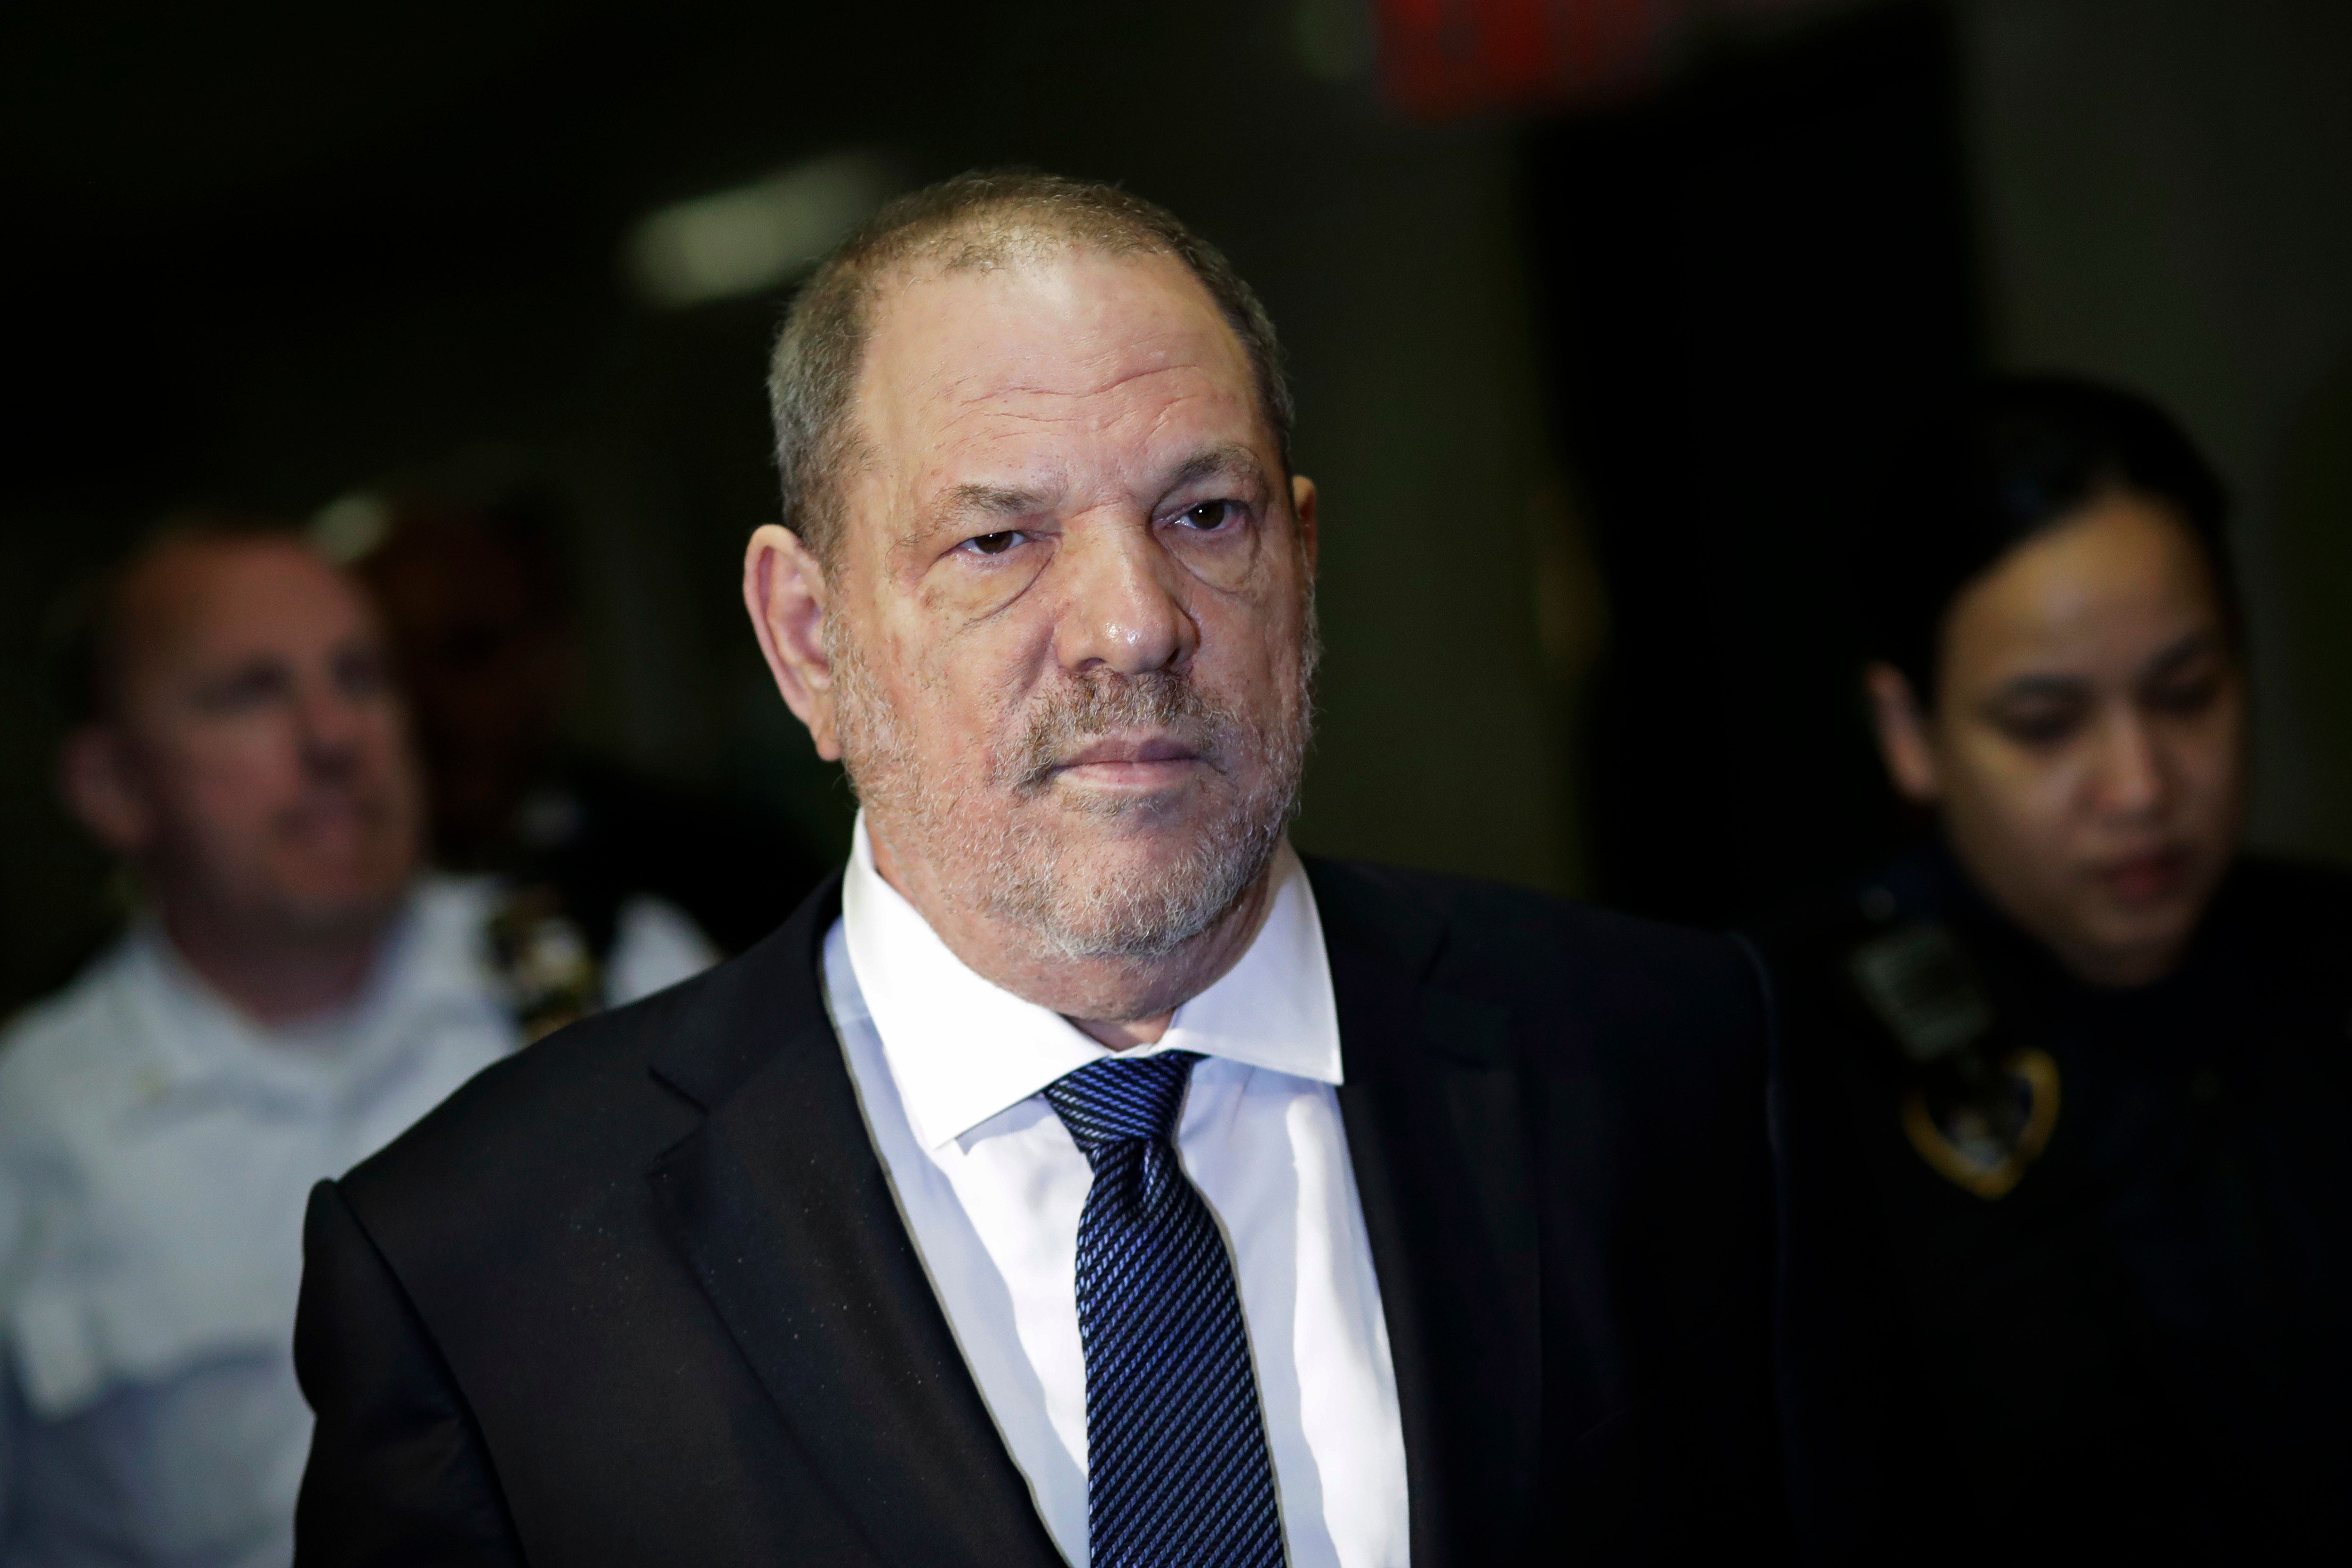 Restaurant Apologises After Putting Insensitive 'Weinstein' Burger On